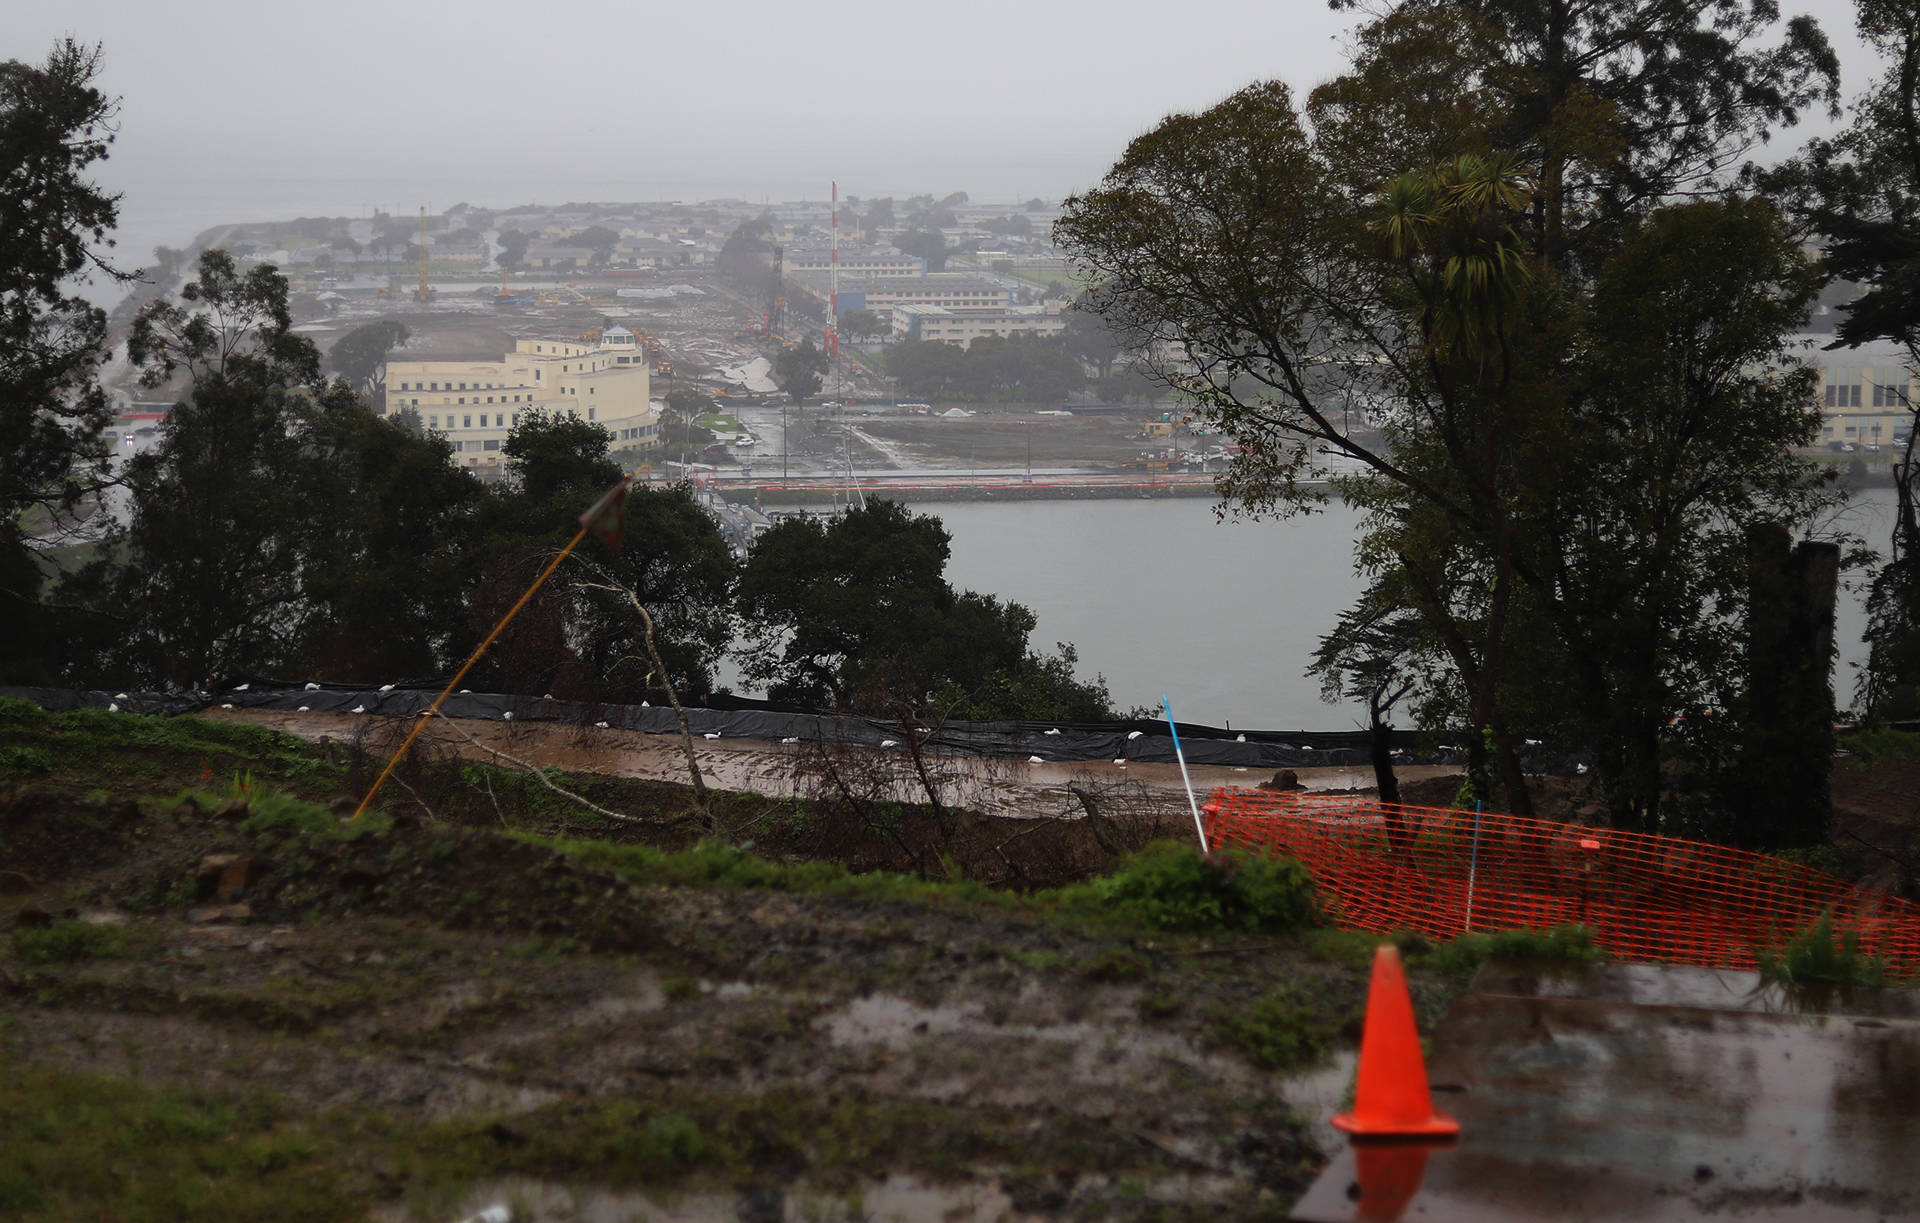 View of Treasure Island. The toxic compounds PFOS and PFOA are present at the island's Superfund site at levels far beyond EPA guidelines. Lindsey Moore/KQED